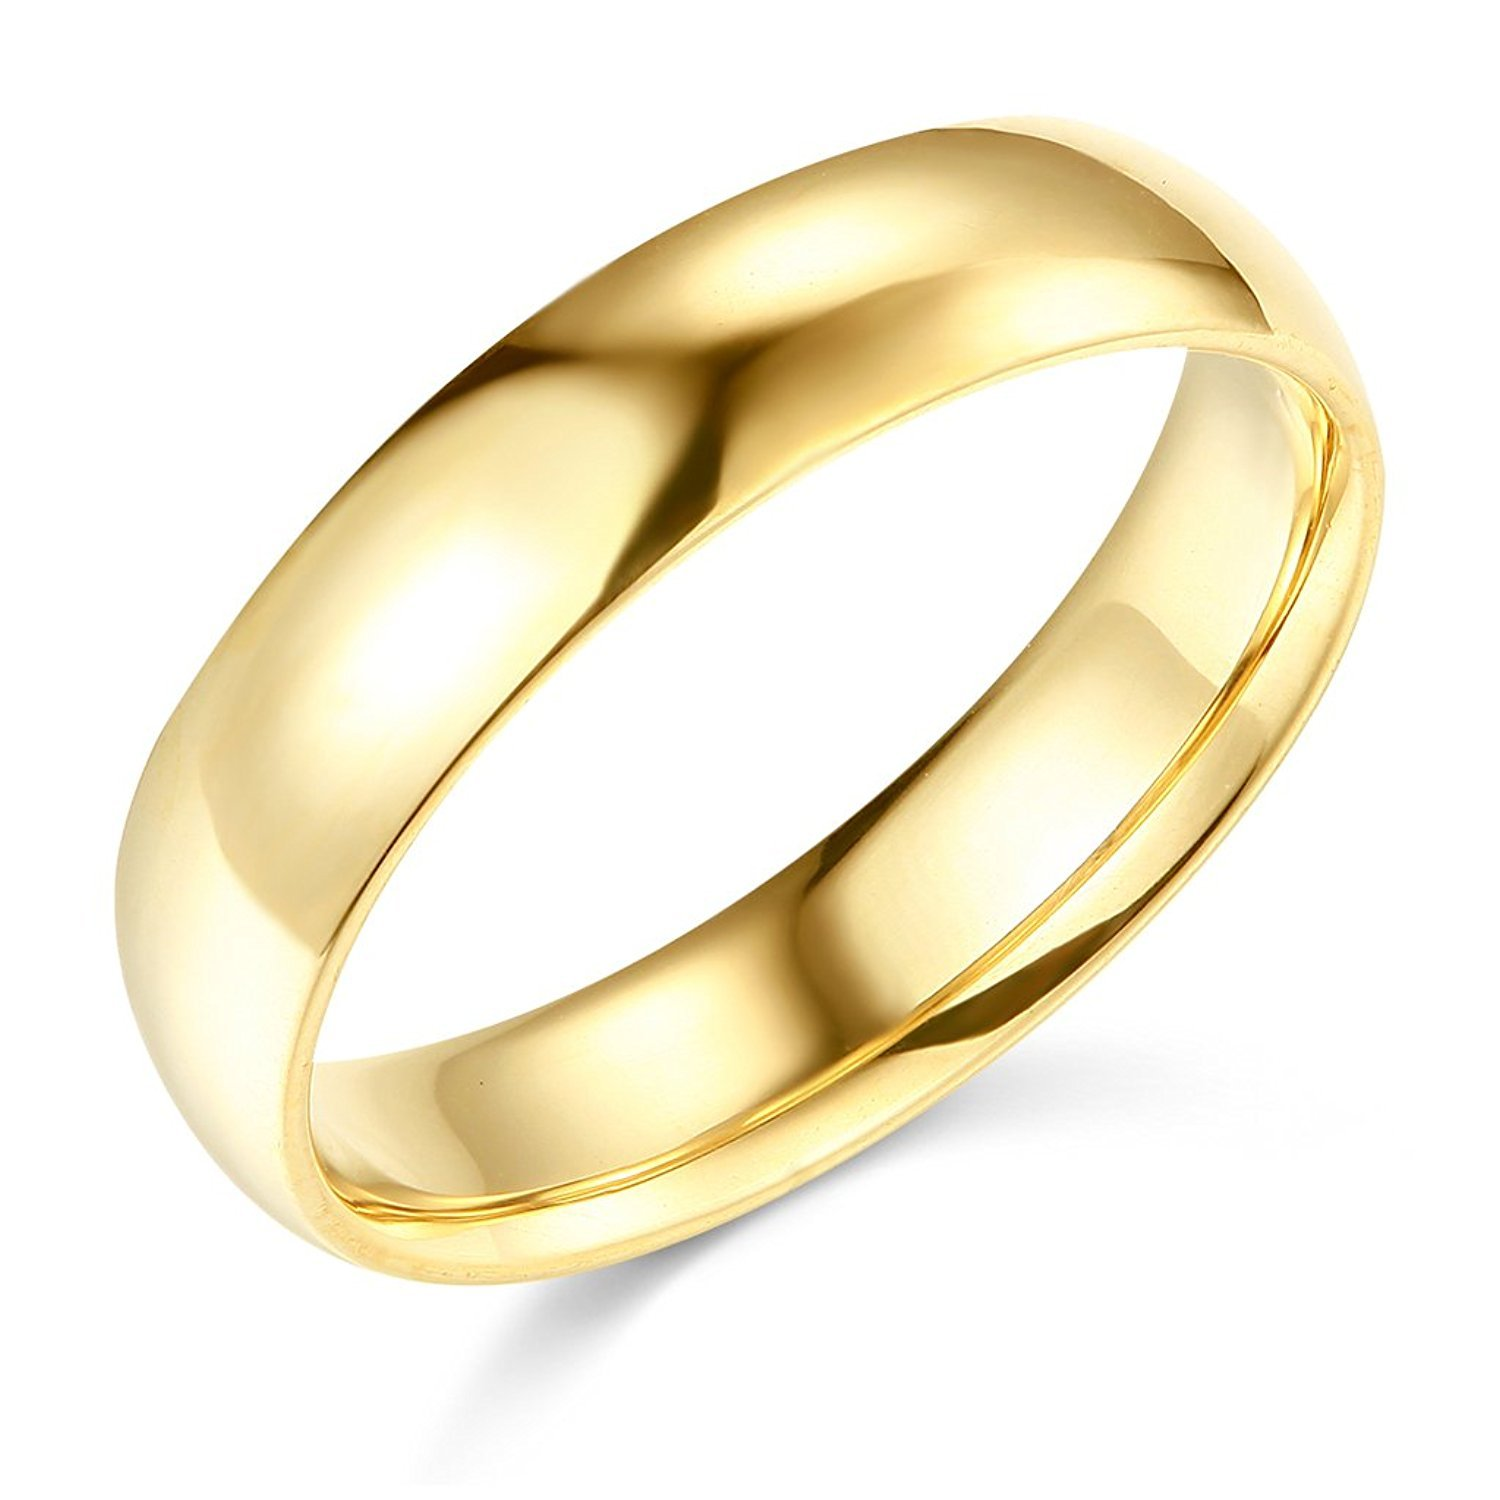 Plain Wedding Band Solid 14k Yellow Gold Ring Regular Fit Polished Finish, 5 mm Size 10